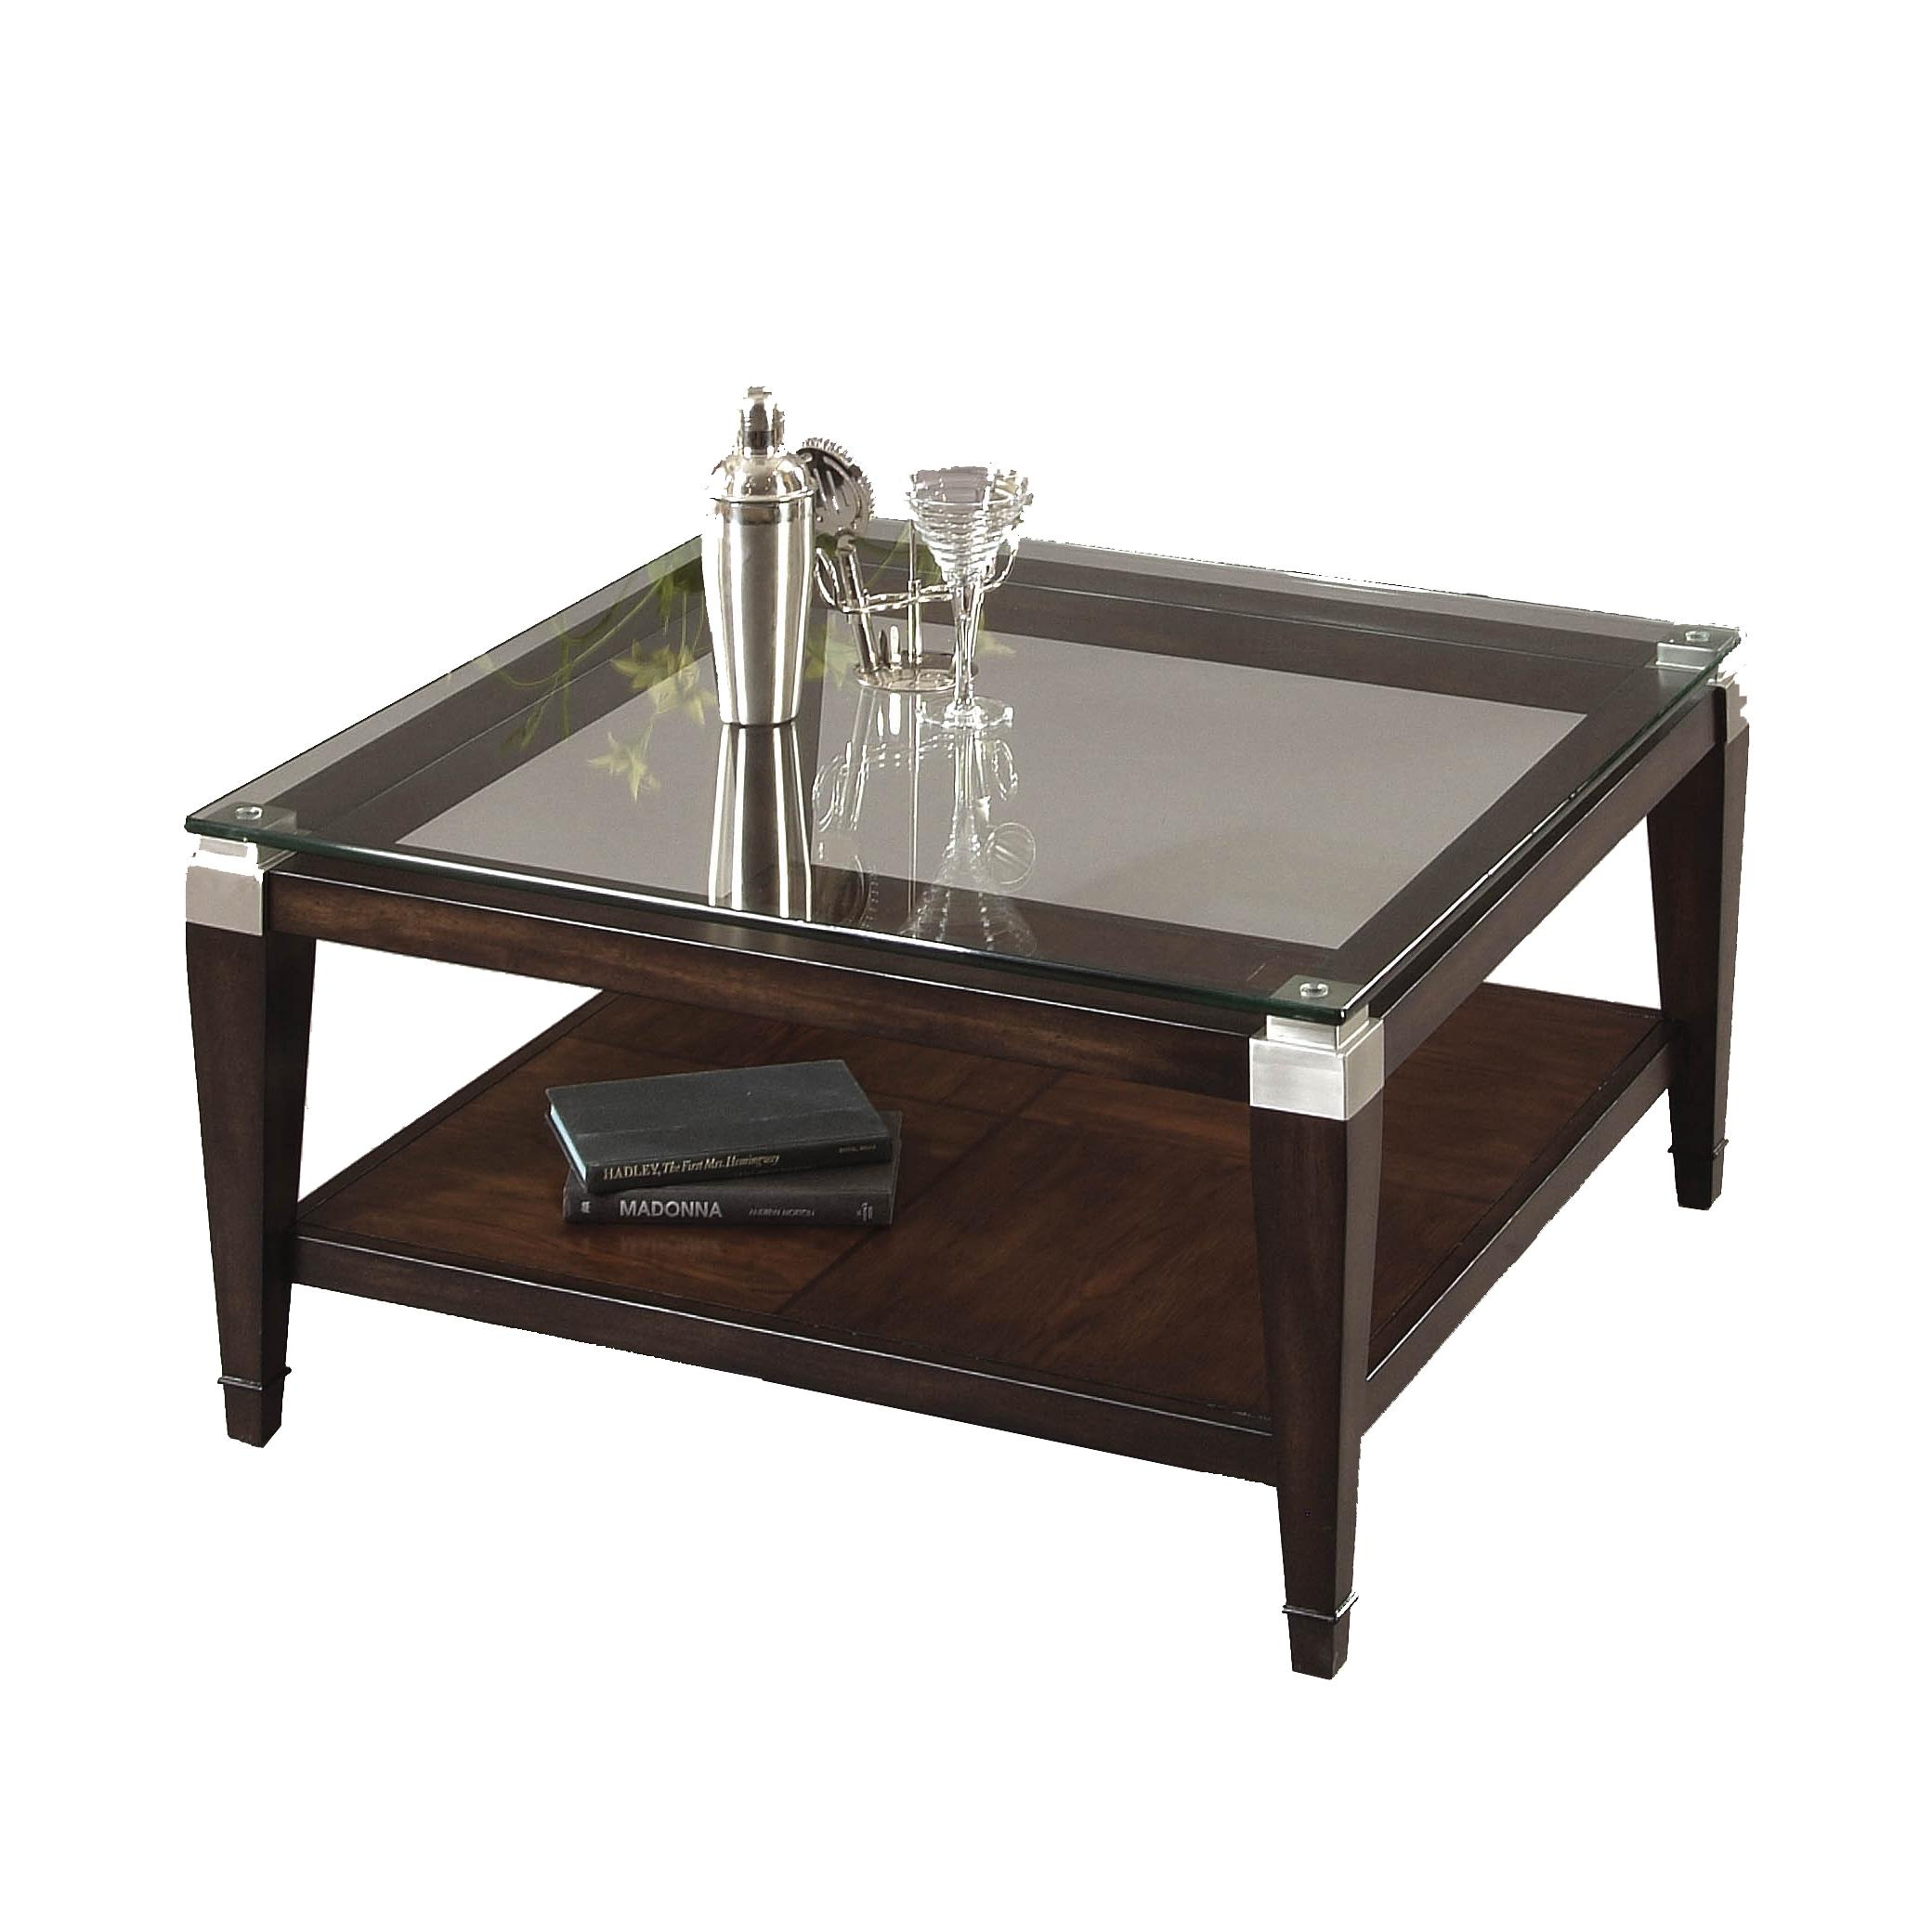 Dunhill Square Cocktail Table by Bassett Mirror at Lapeer Furniture & Mattress Center